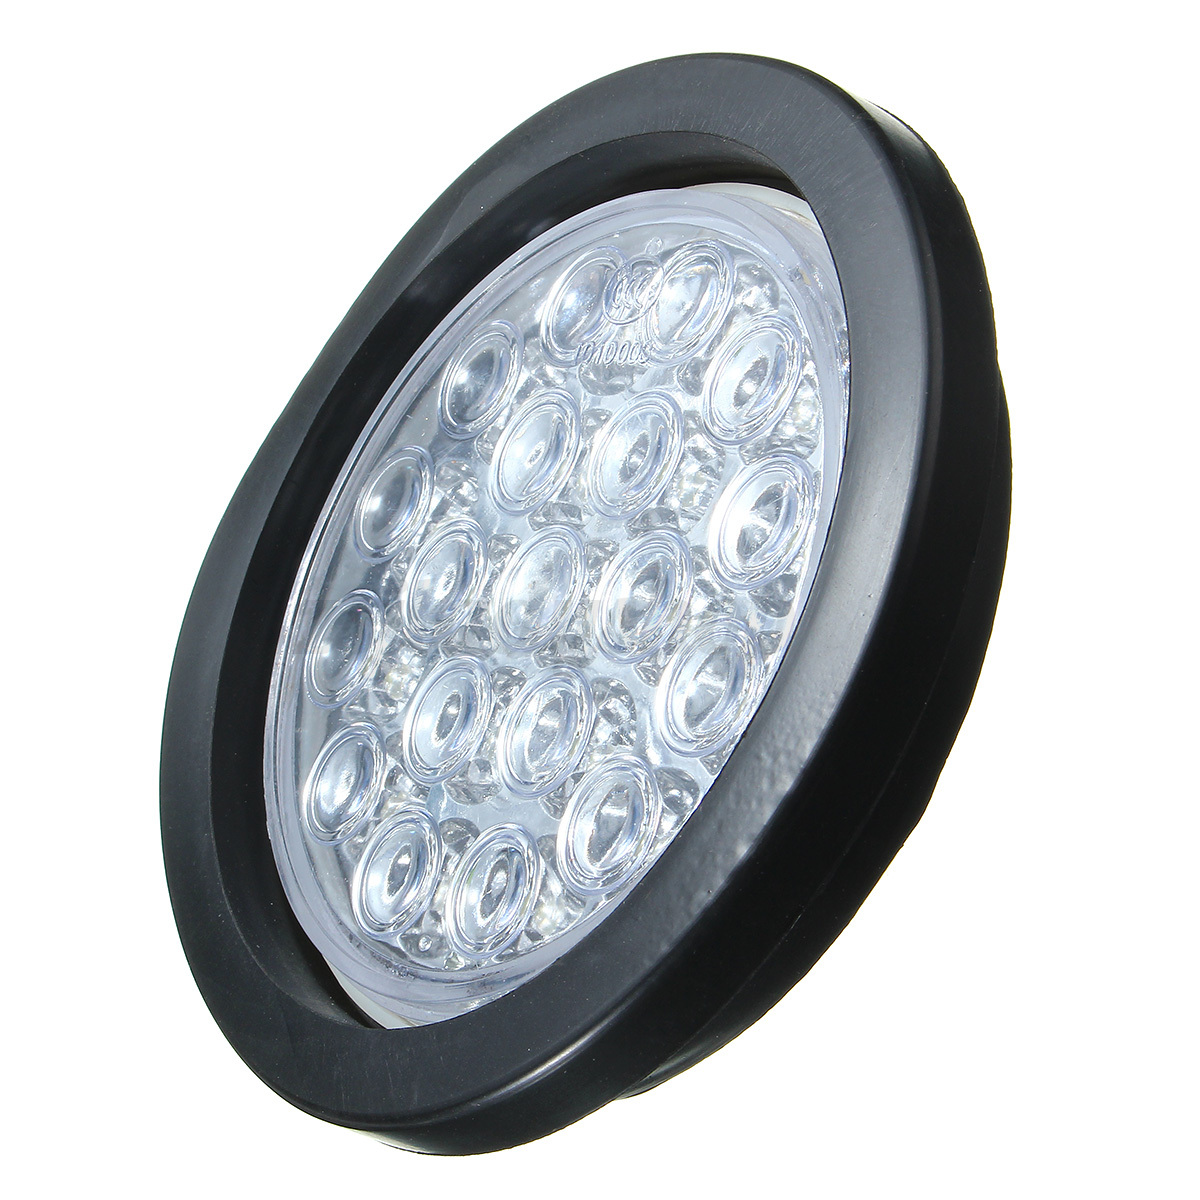 Details about 2x White 19 LED Truck Trailer Round Reflector Turn Brake ...